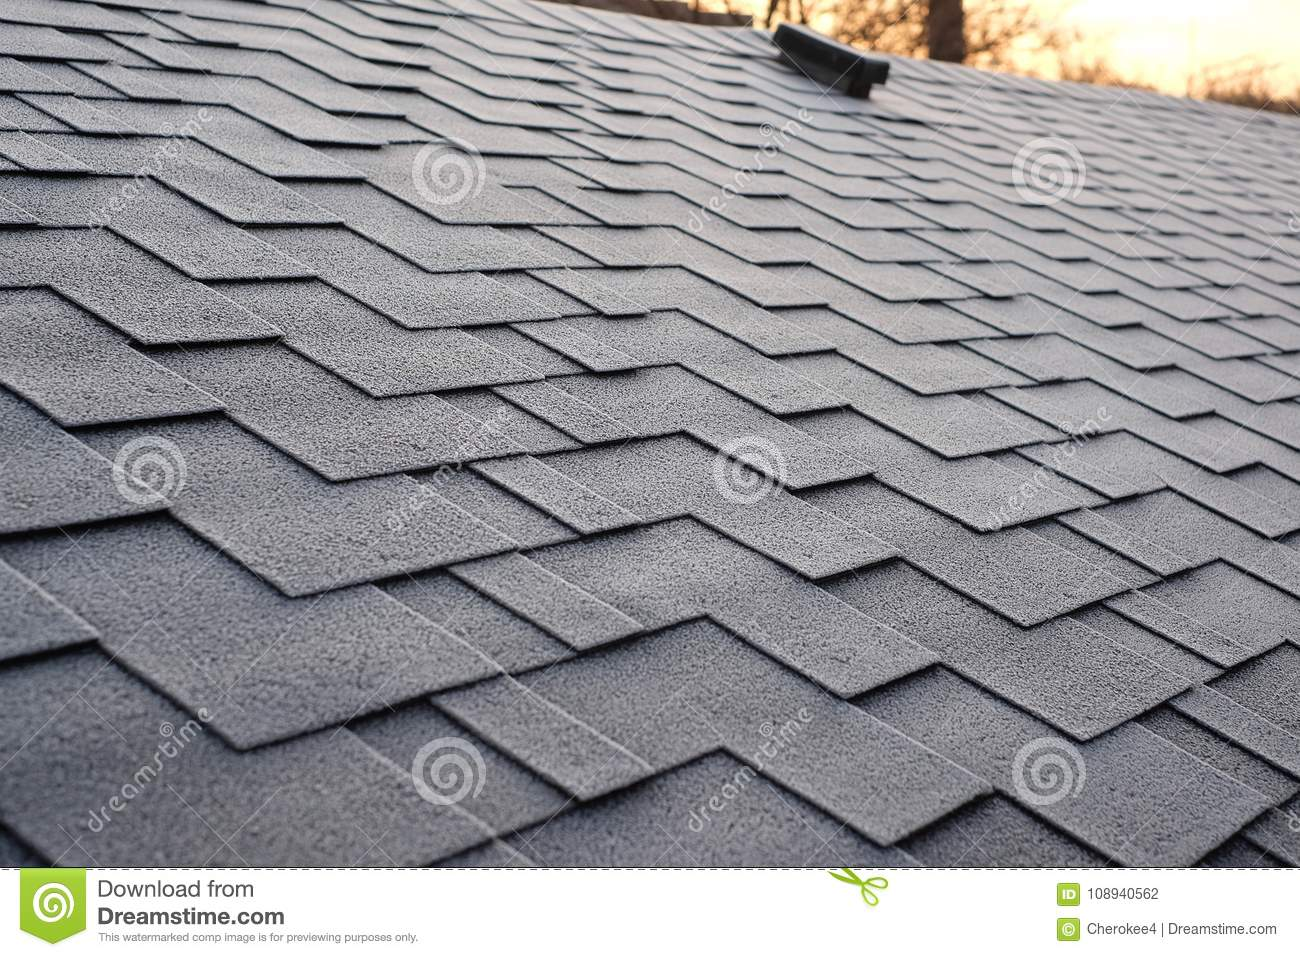 Close up view on Asphalt Roofing Shingles Background. Roof Shingles - Roofing. Shingles roof damage covered with frost.